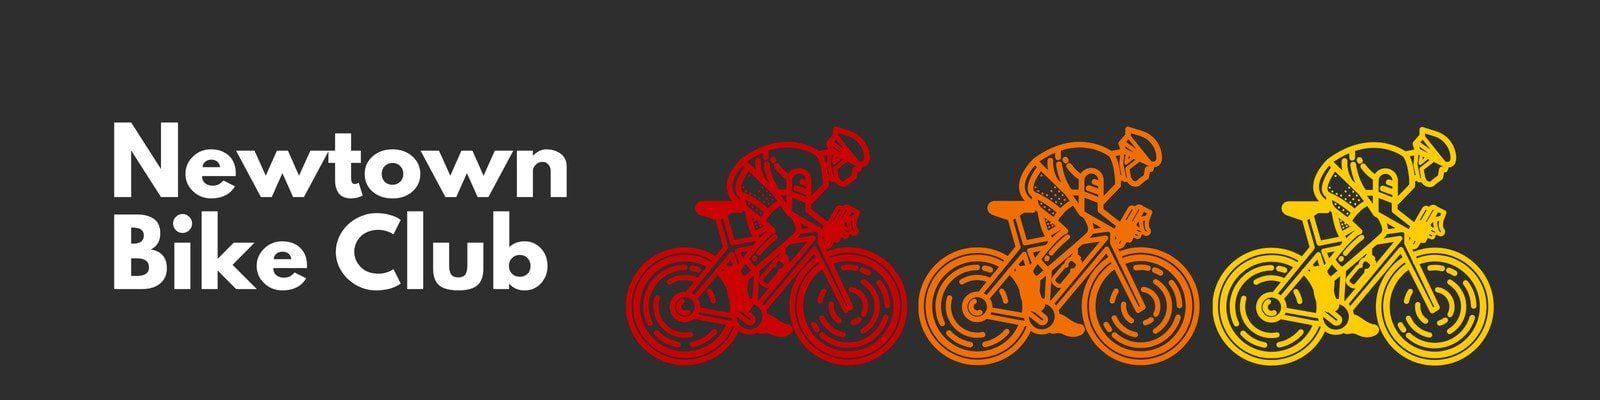 Red Orange Yellow Colorful Bikers Etsy Shop Cover Banner